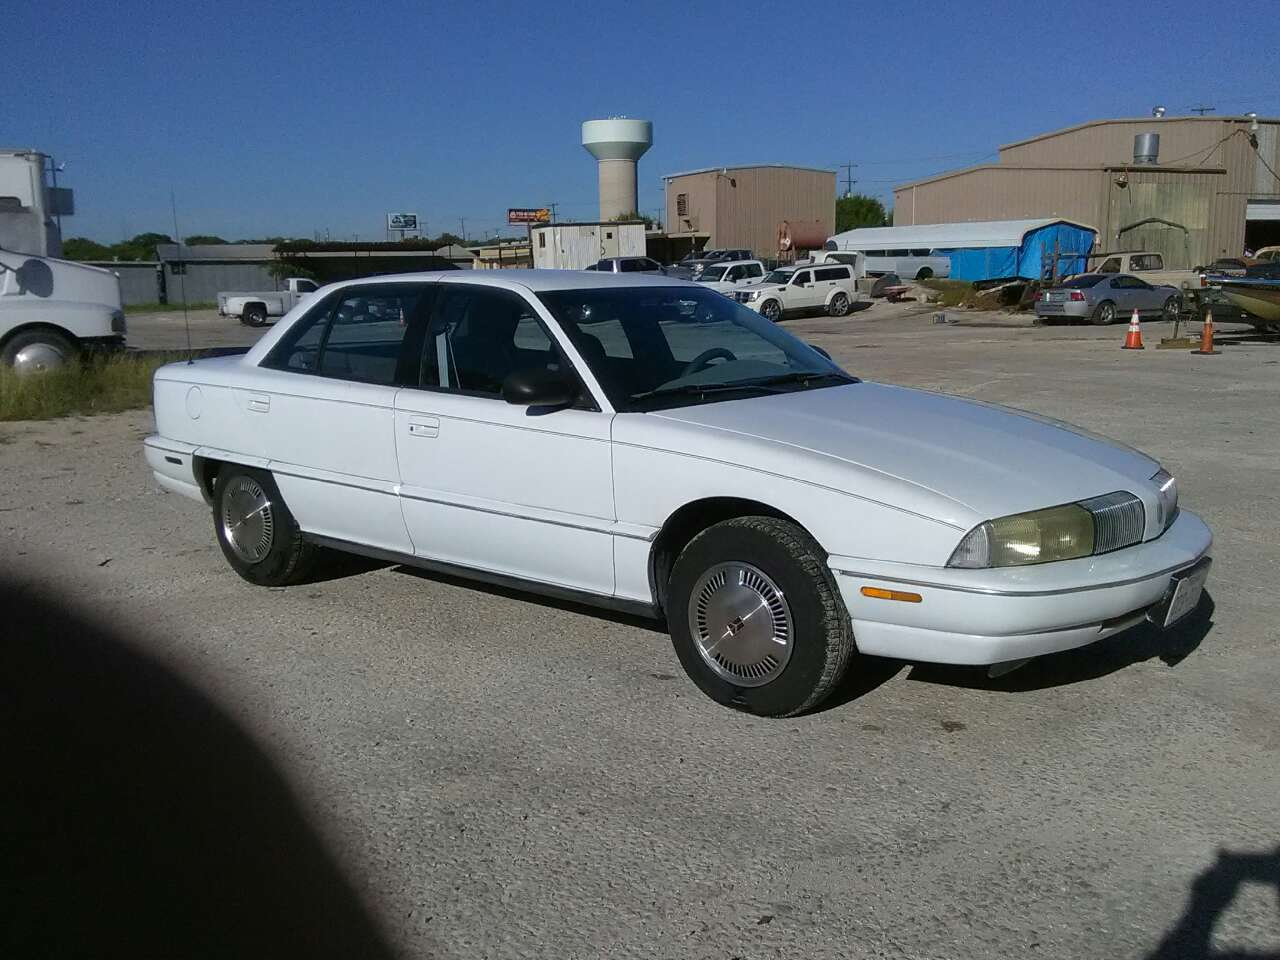 Used Cars And Motors In Leon Valley Tx Letgo Page 9